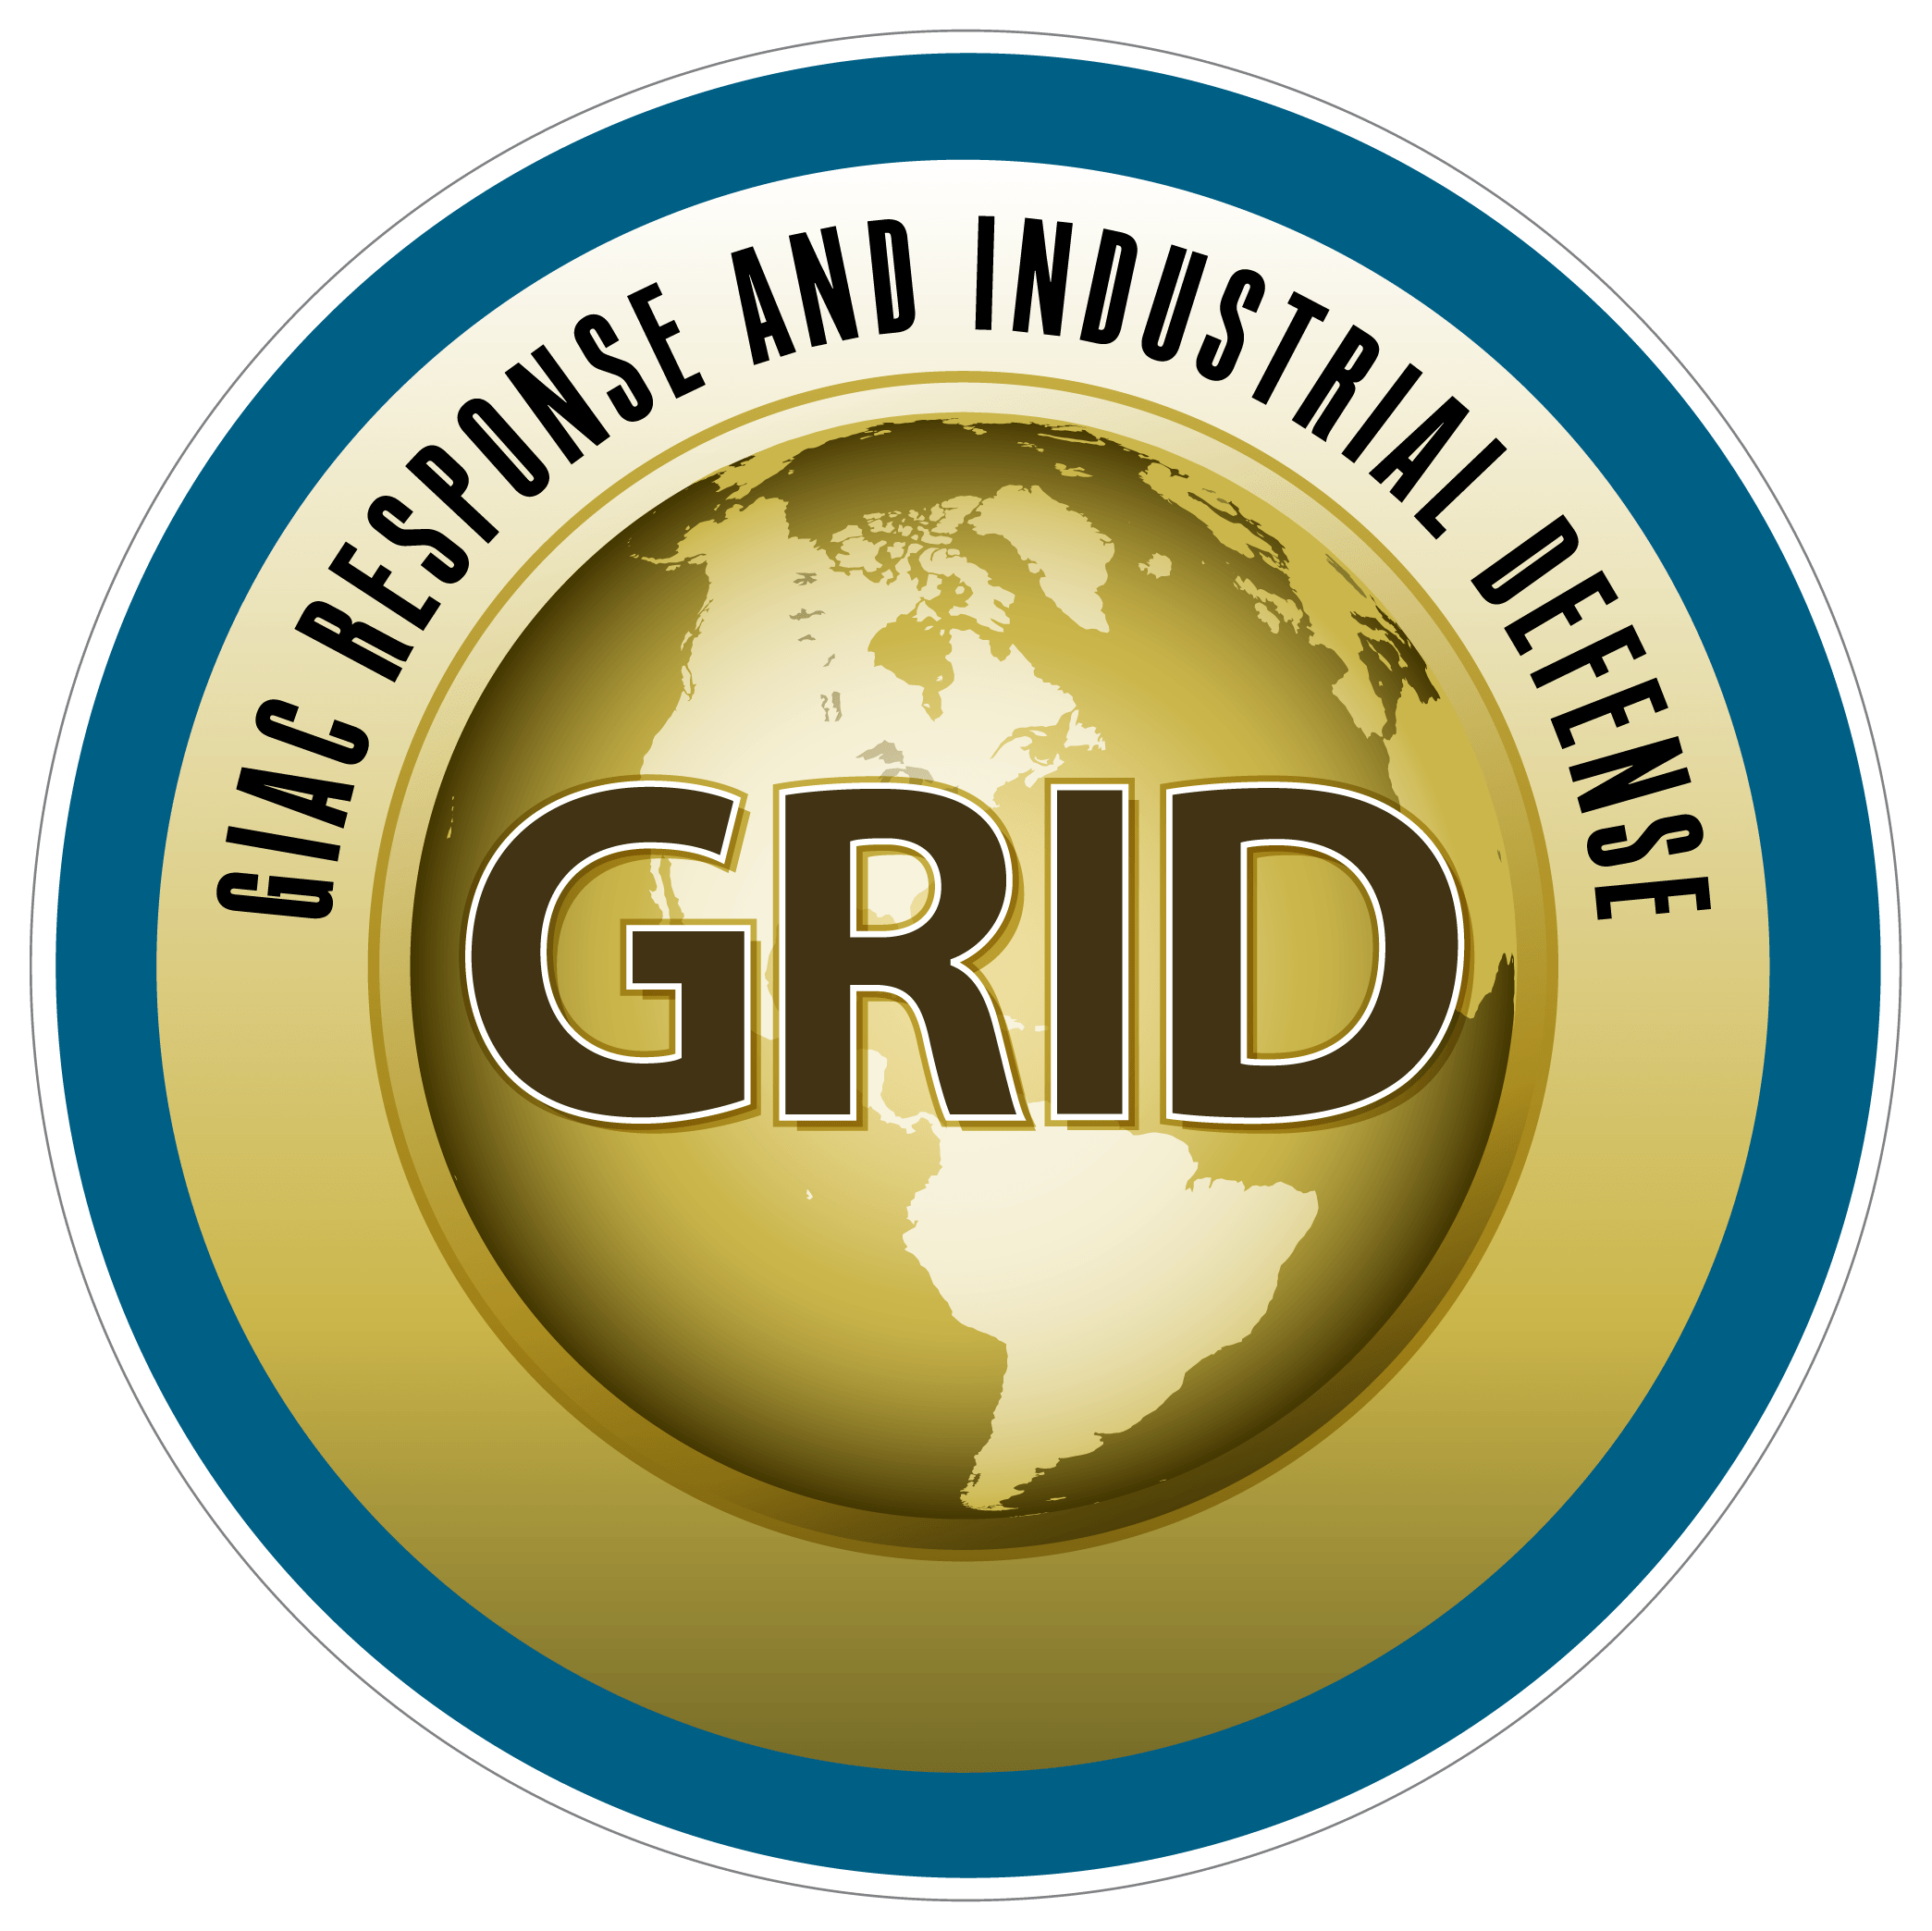 GIAC Response and Industrial Defense (GRID) icon